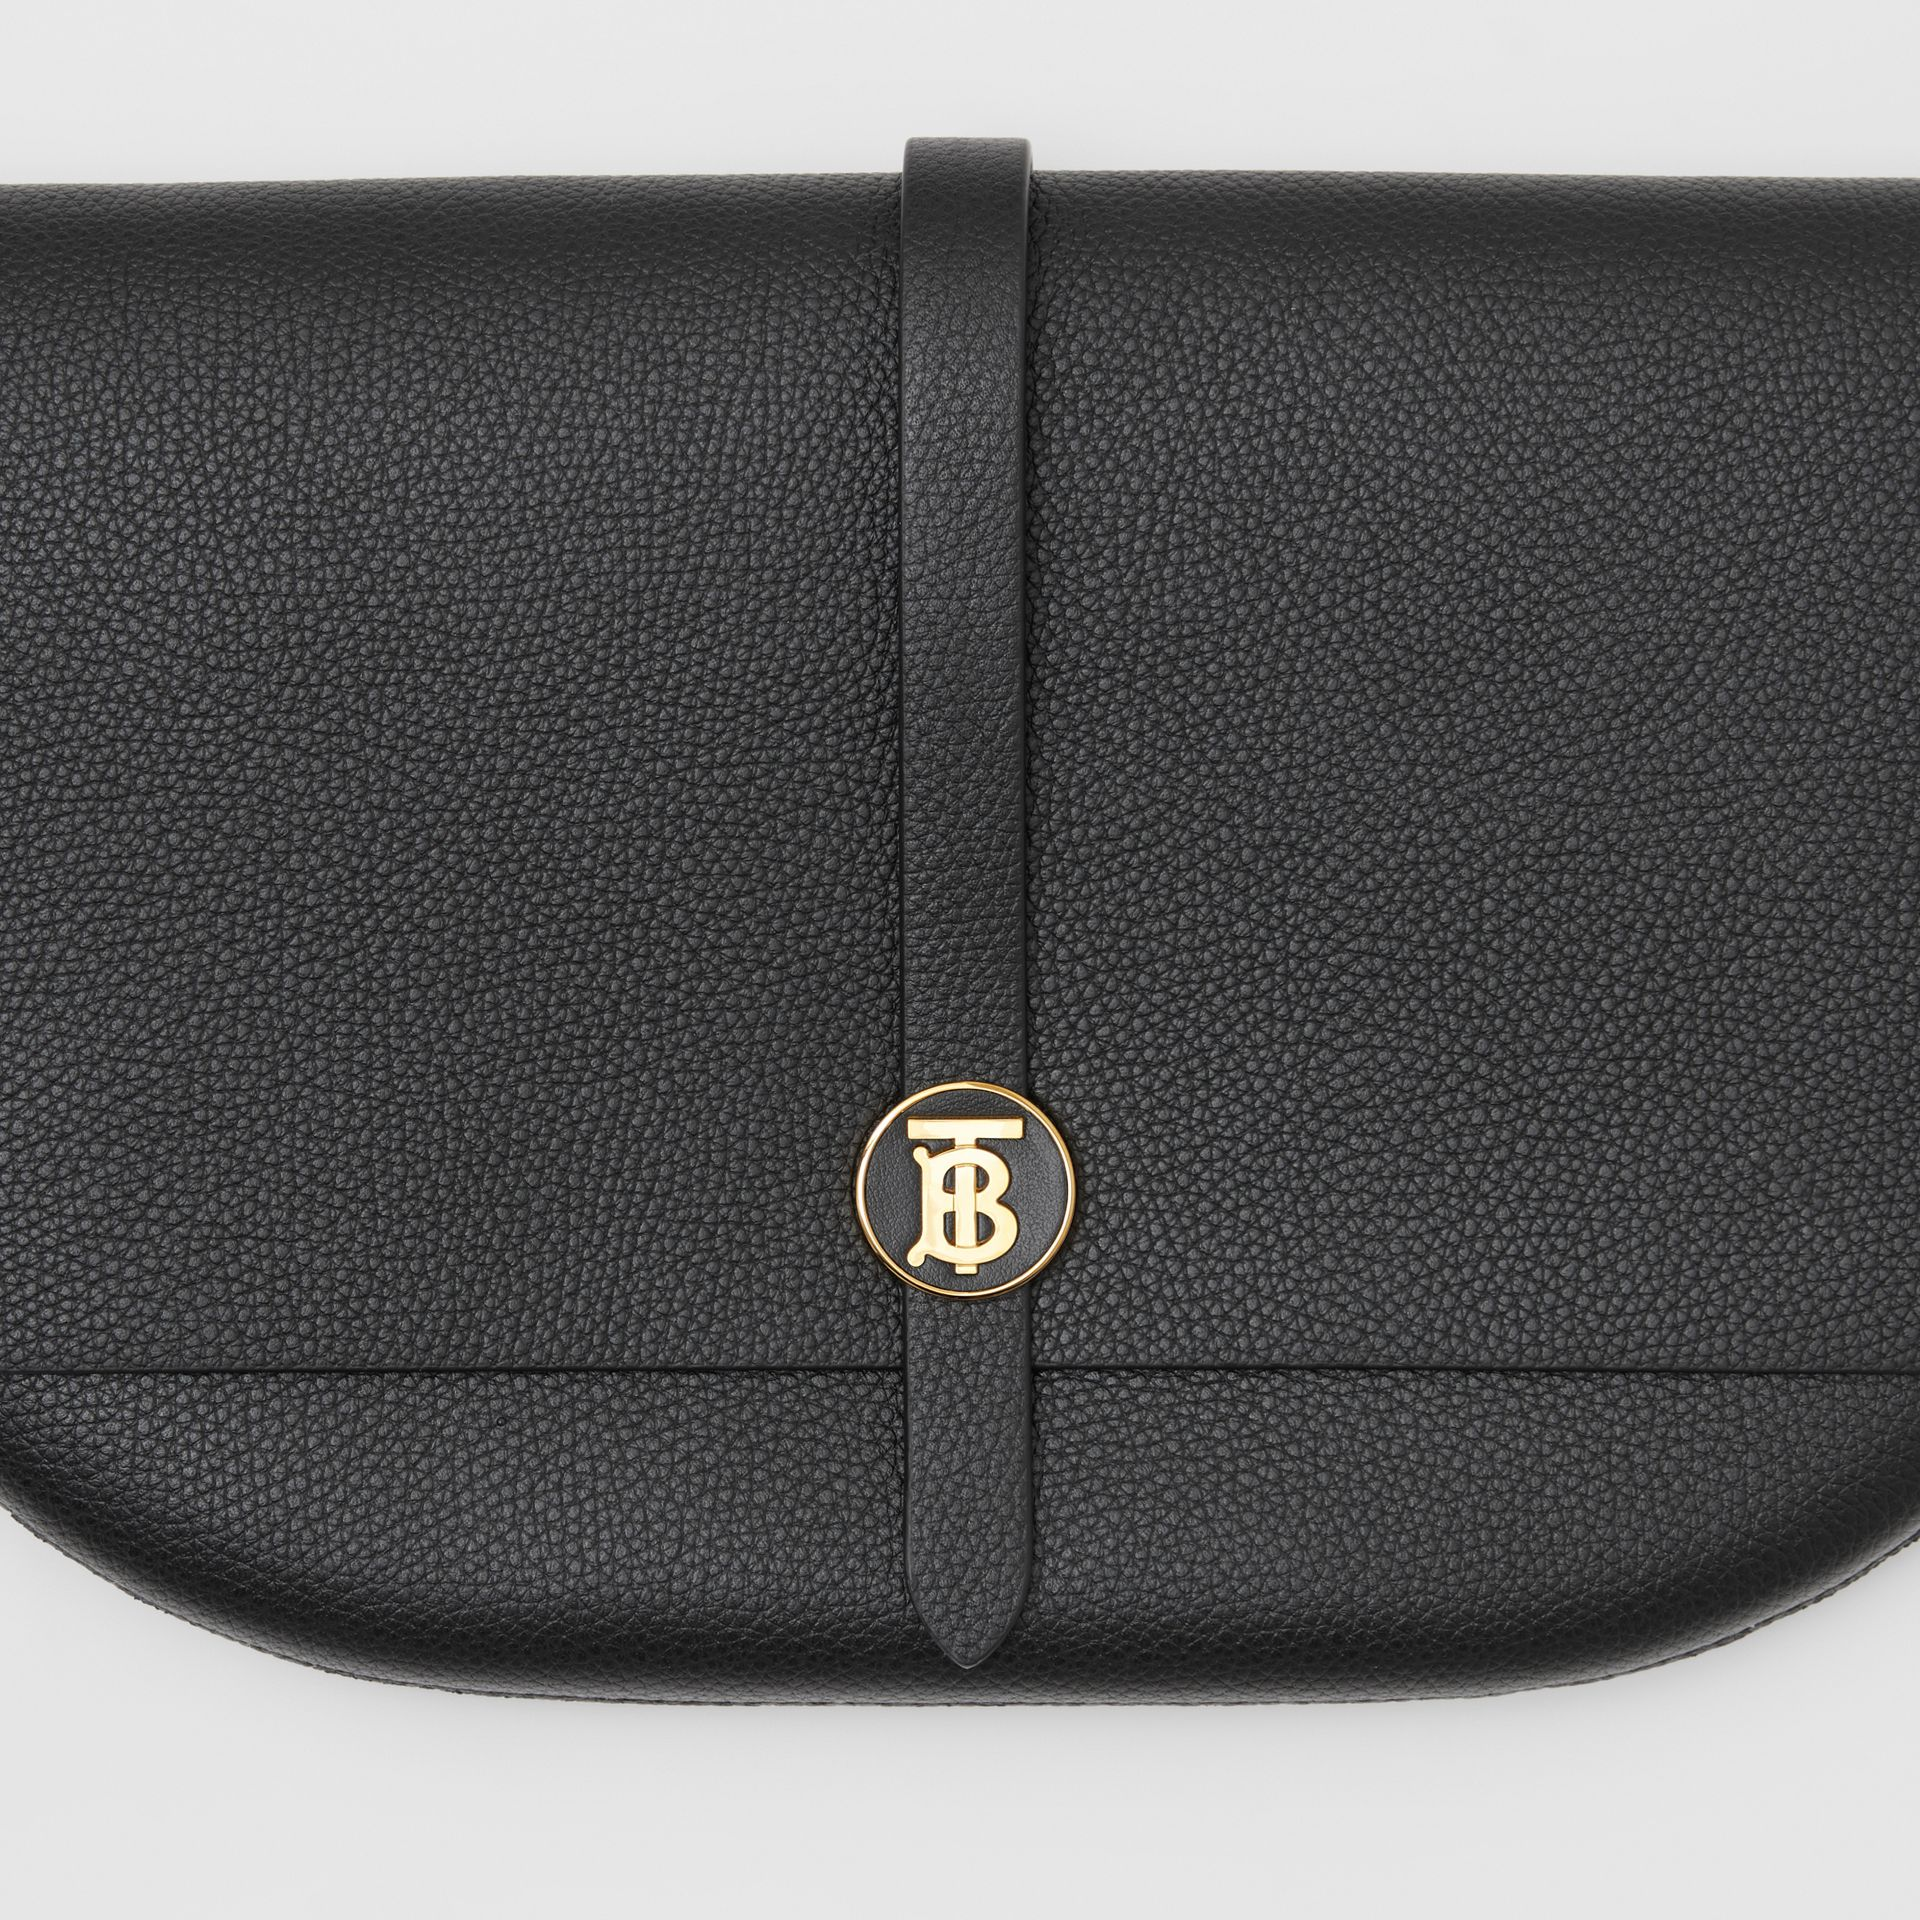 Grainy Leather Anne Clutch in Black - Women | Burberry United Kingdom - gallery image 1